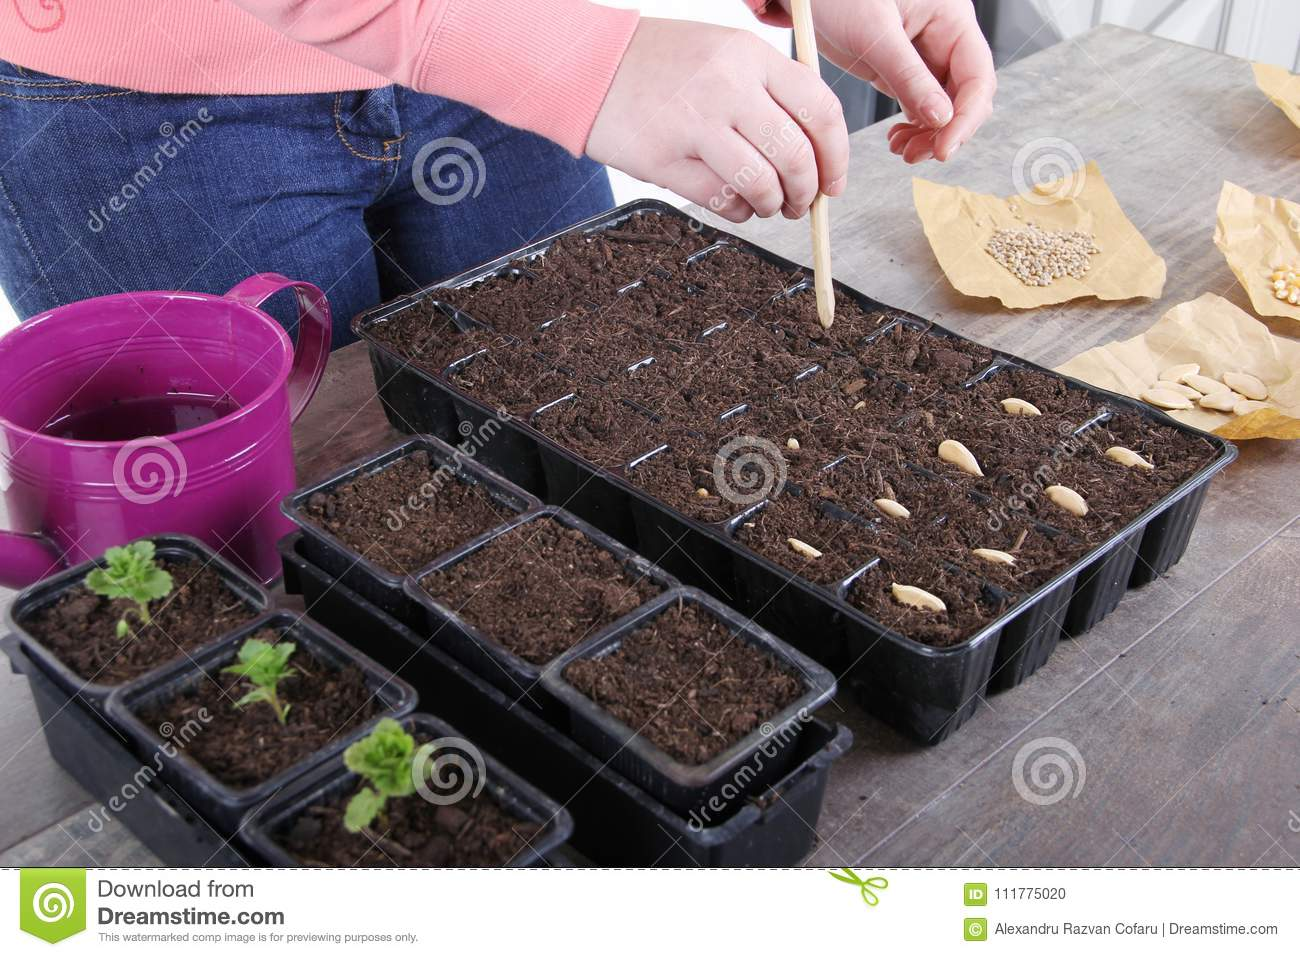 Women planting vegetable seeds close up